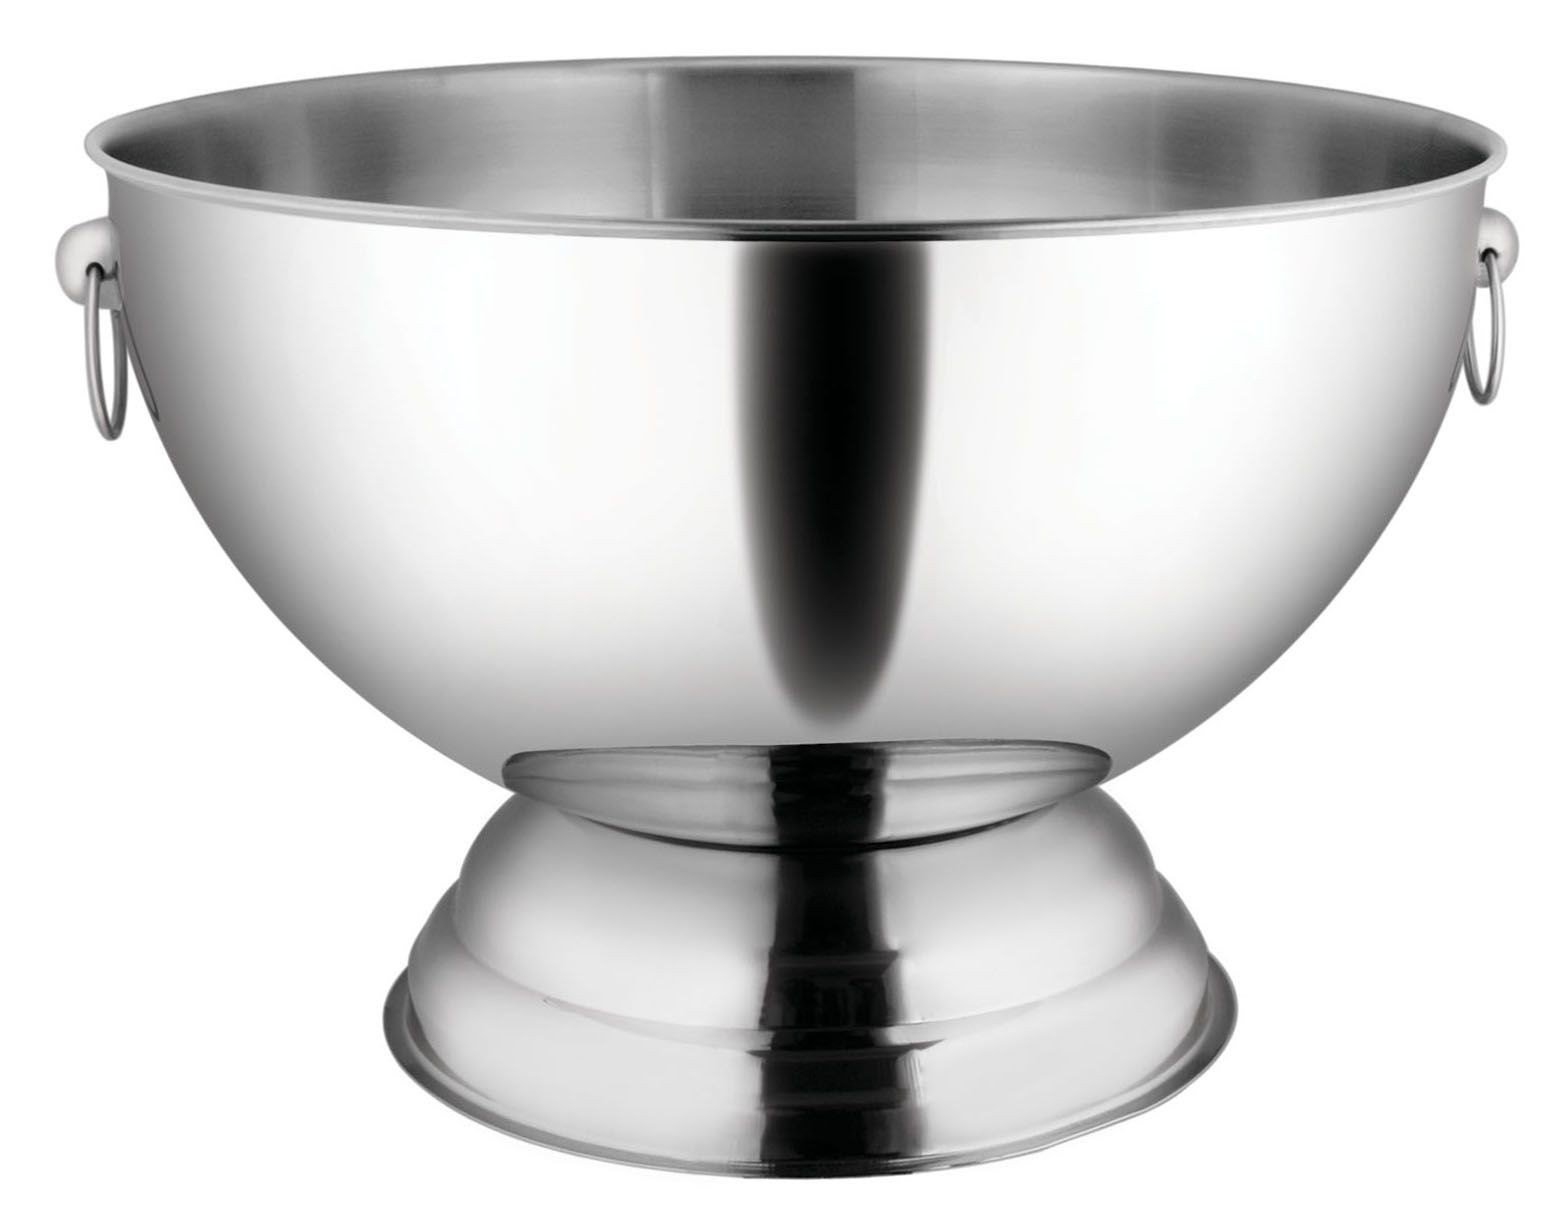 Winco SPB-35 Stainless Steel Punch Bowl, 3.5 Gallons